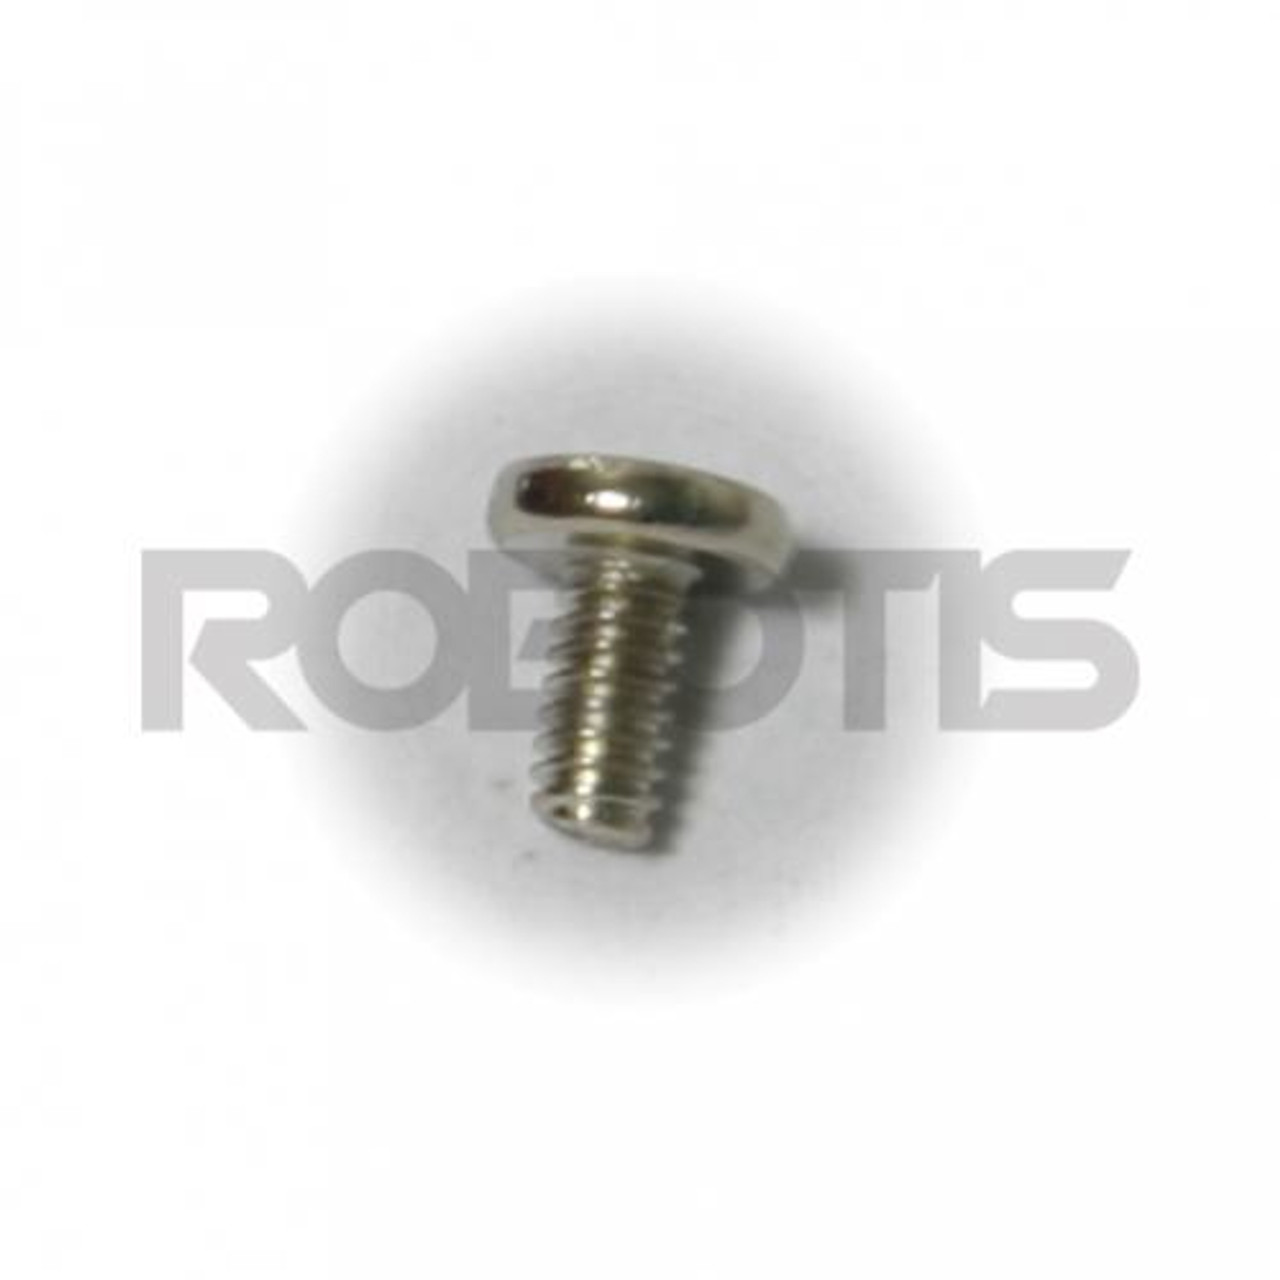 Bolt FHS M2*4 (200 pcs)